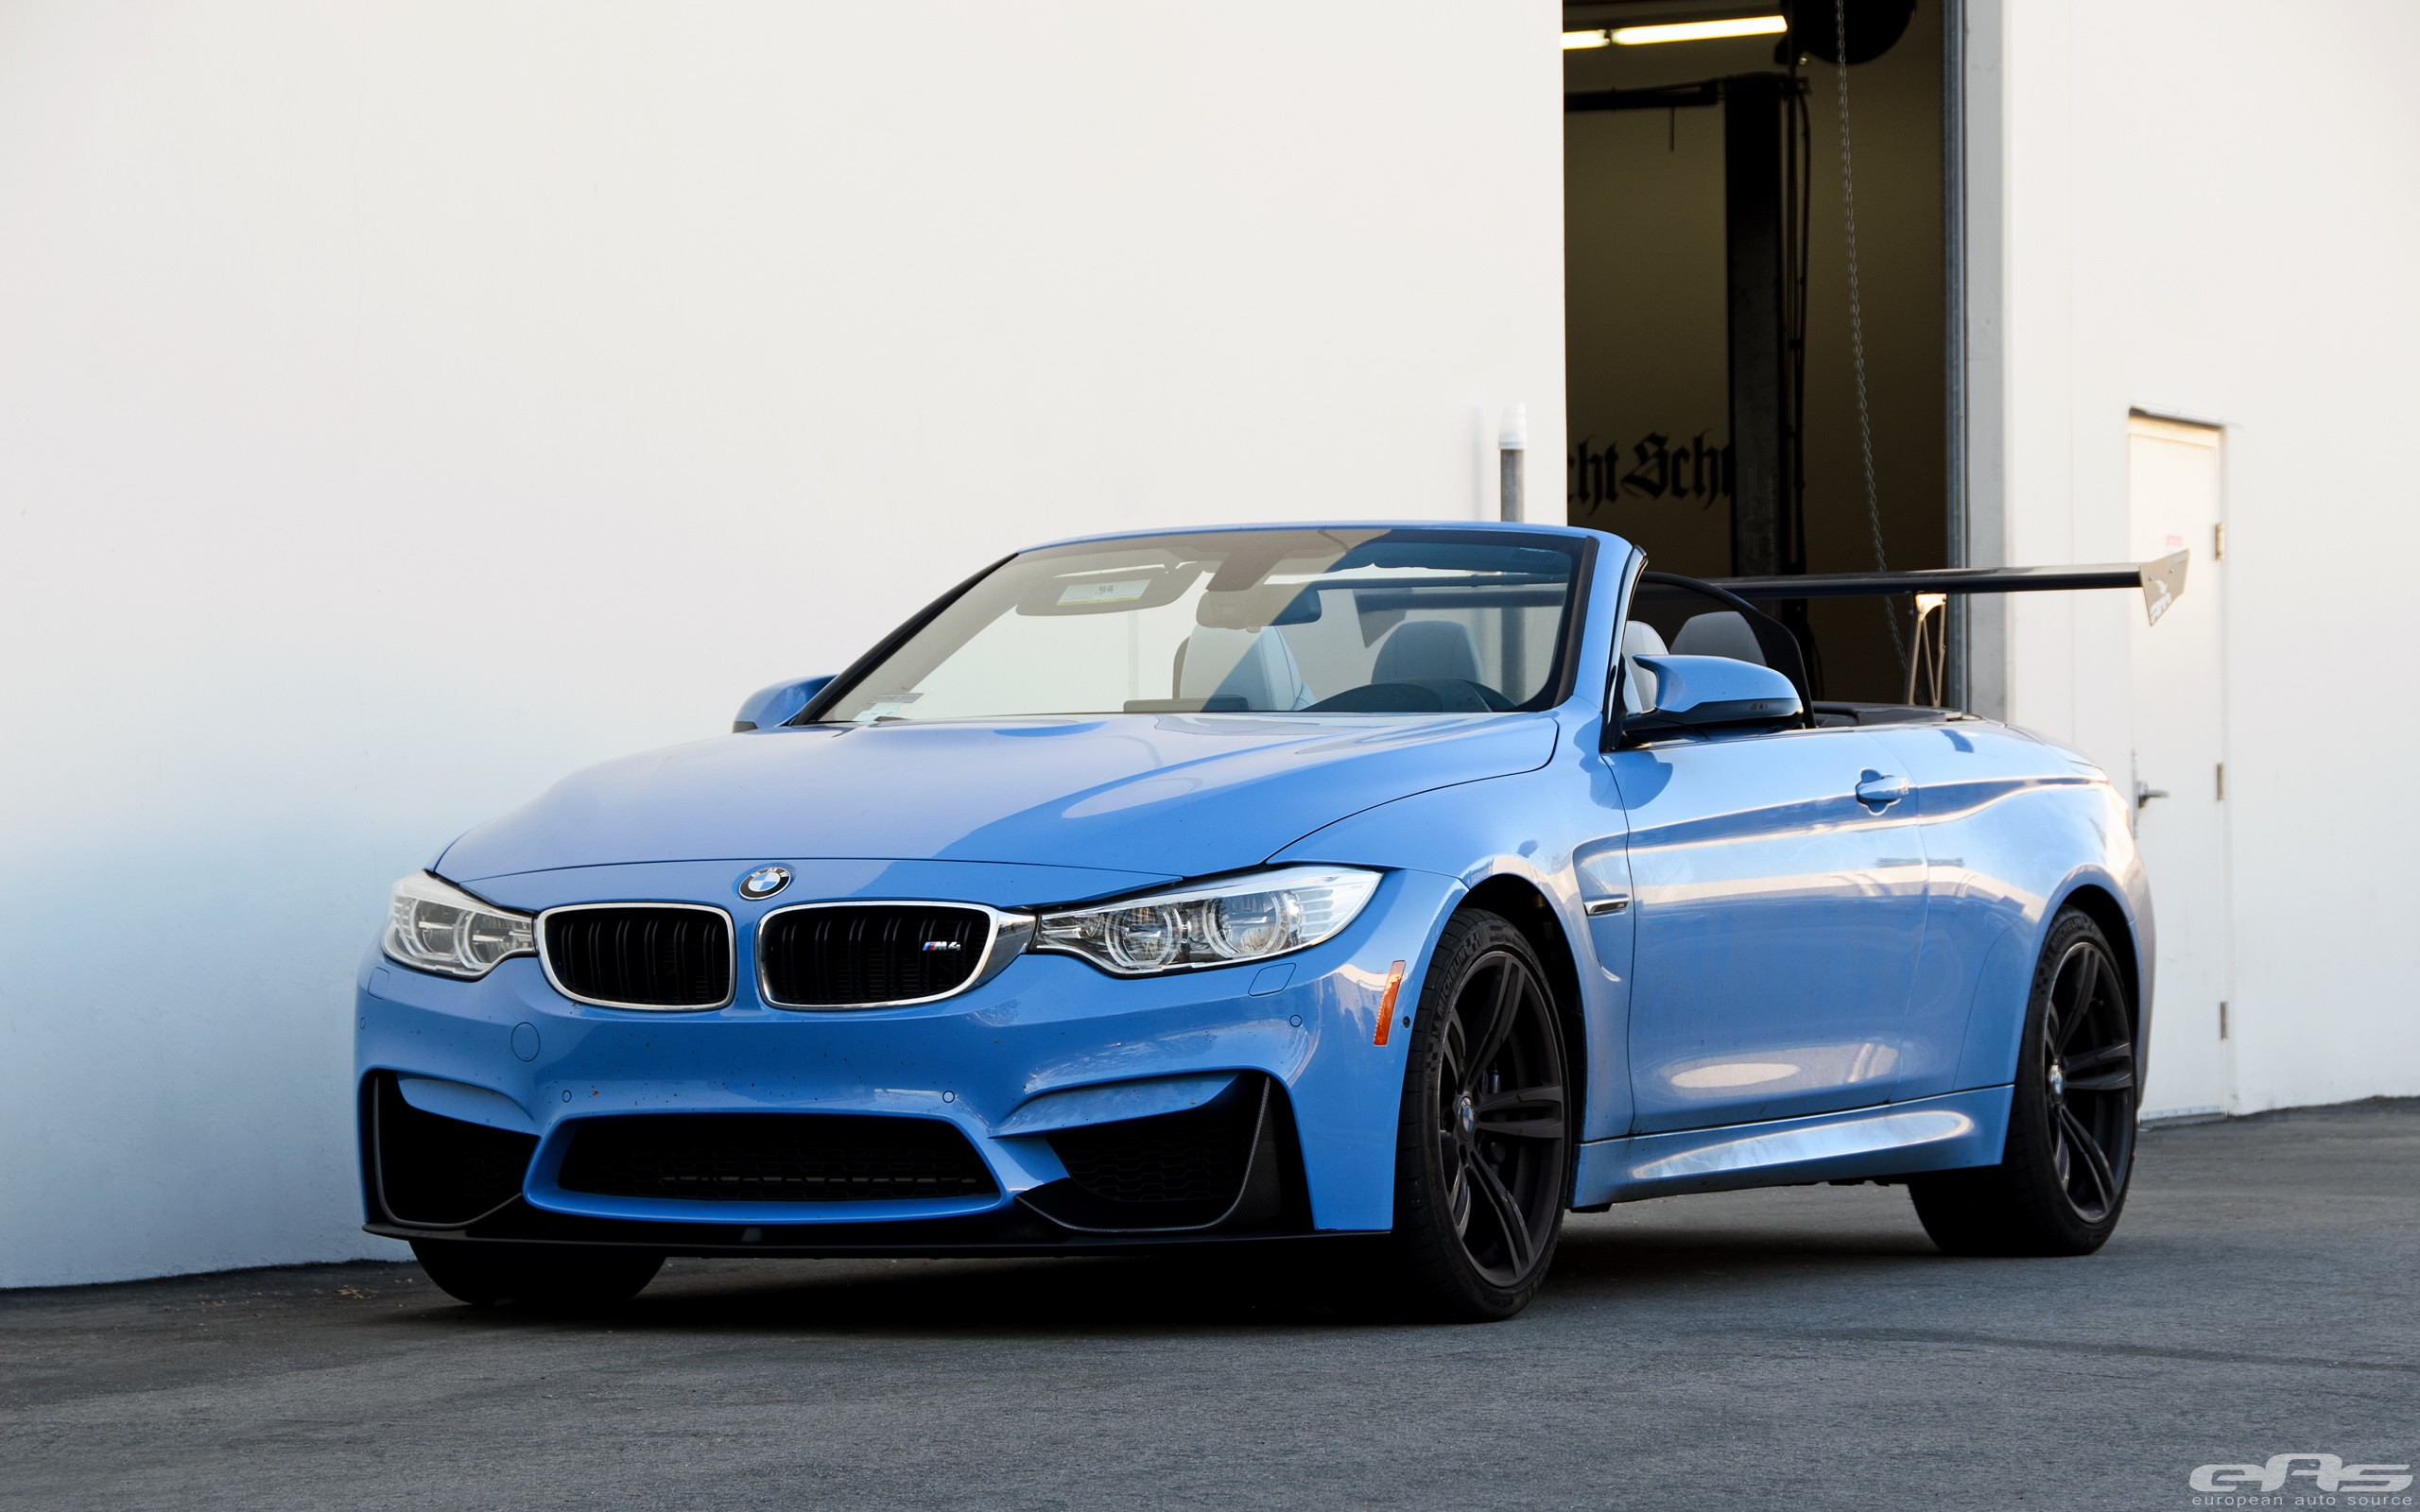 Bmw 428i Convertible 2017 >> Check Out the BMW M4 Convertible Running 12.2 Quarter Mile ...